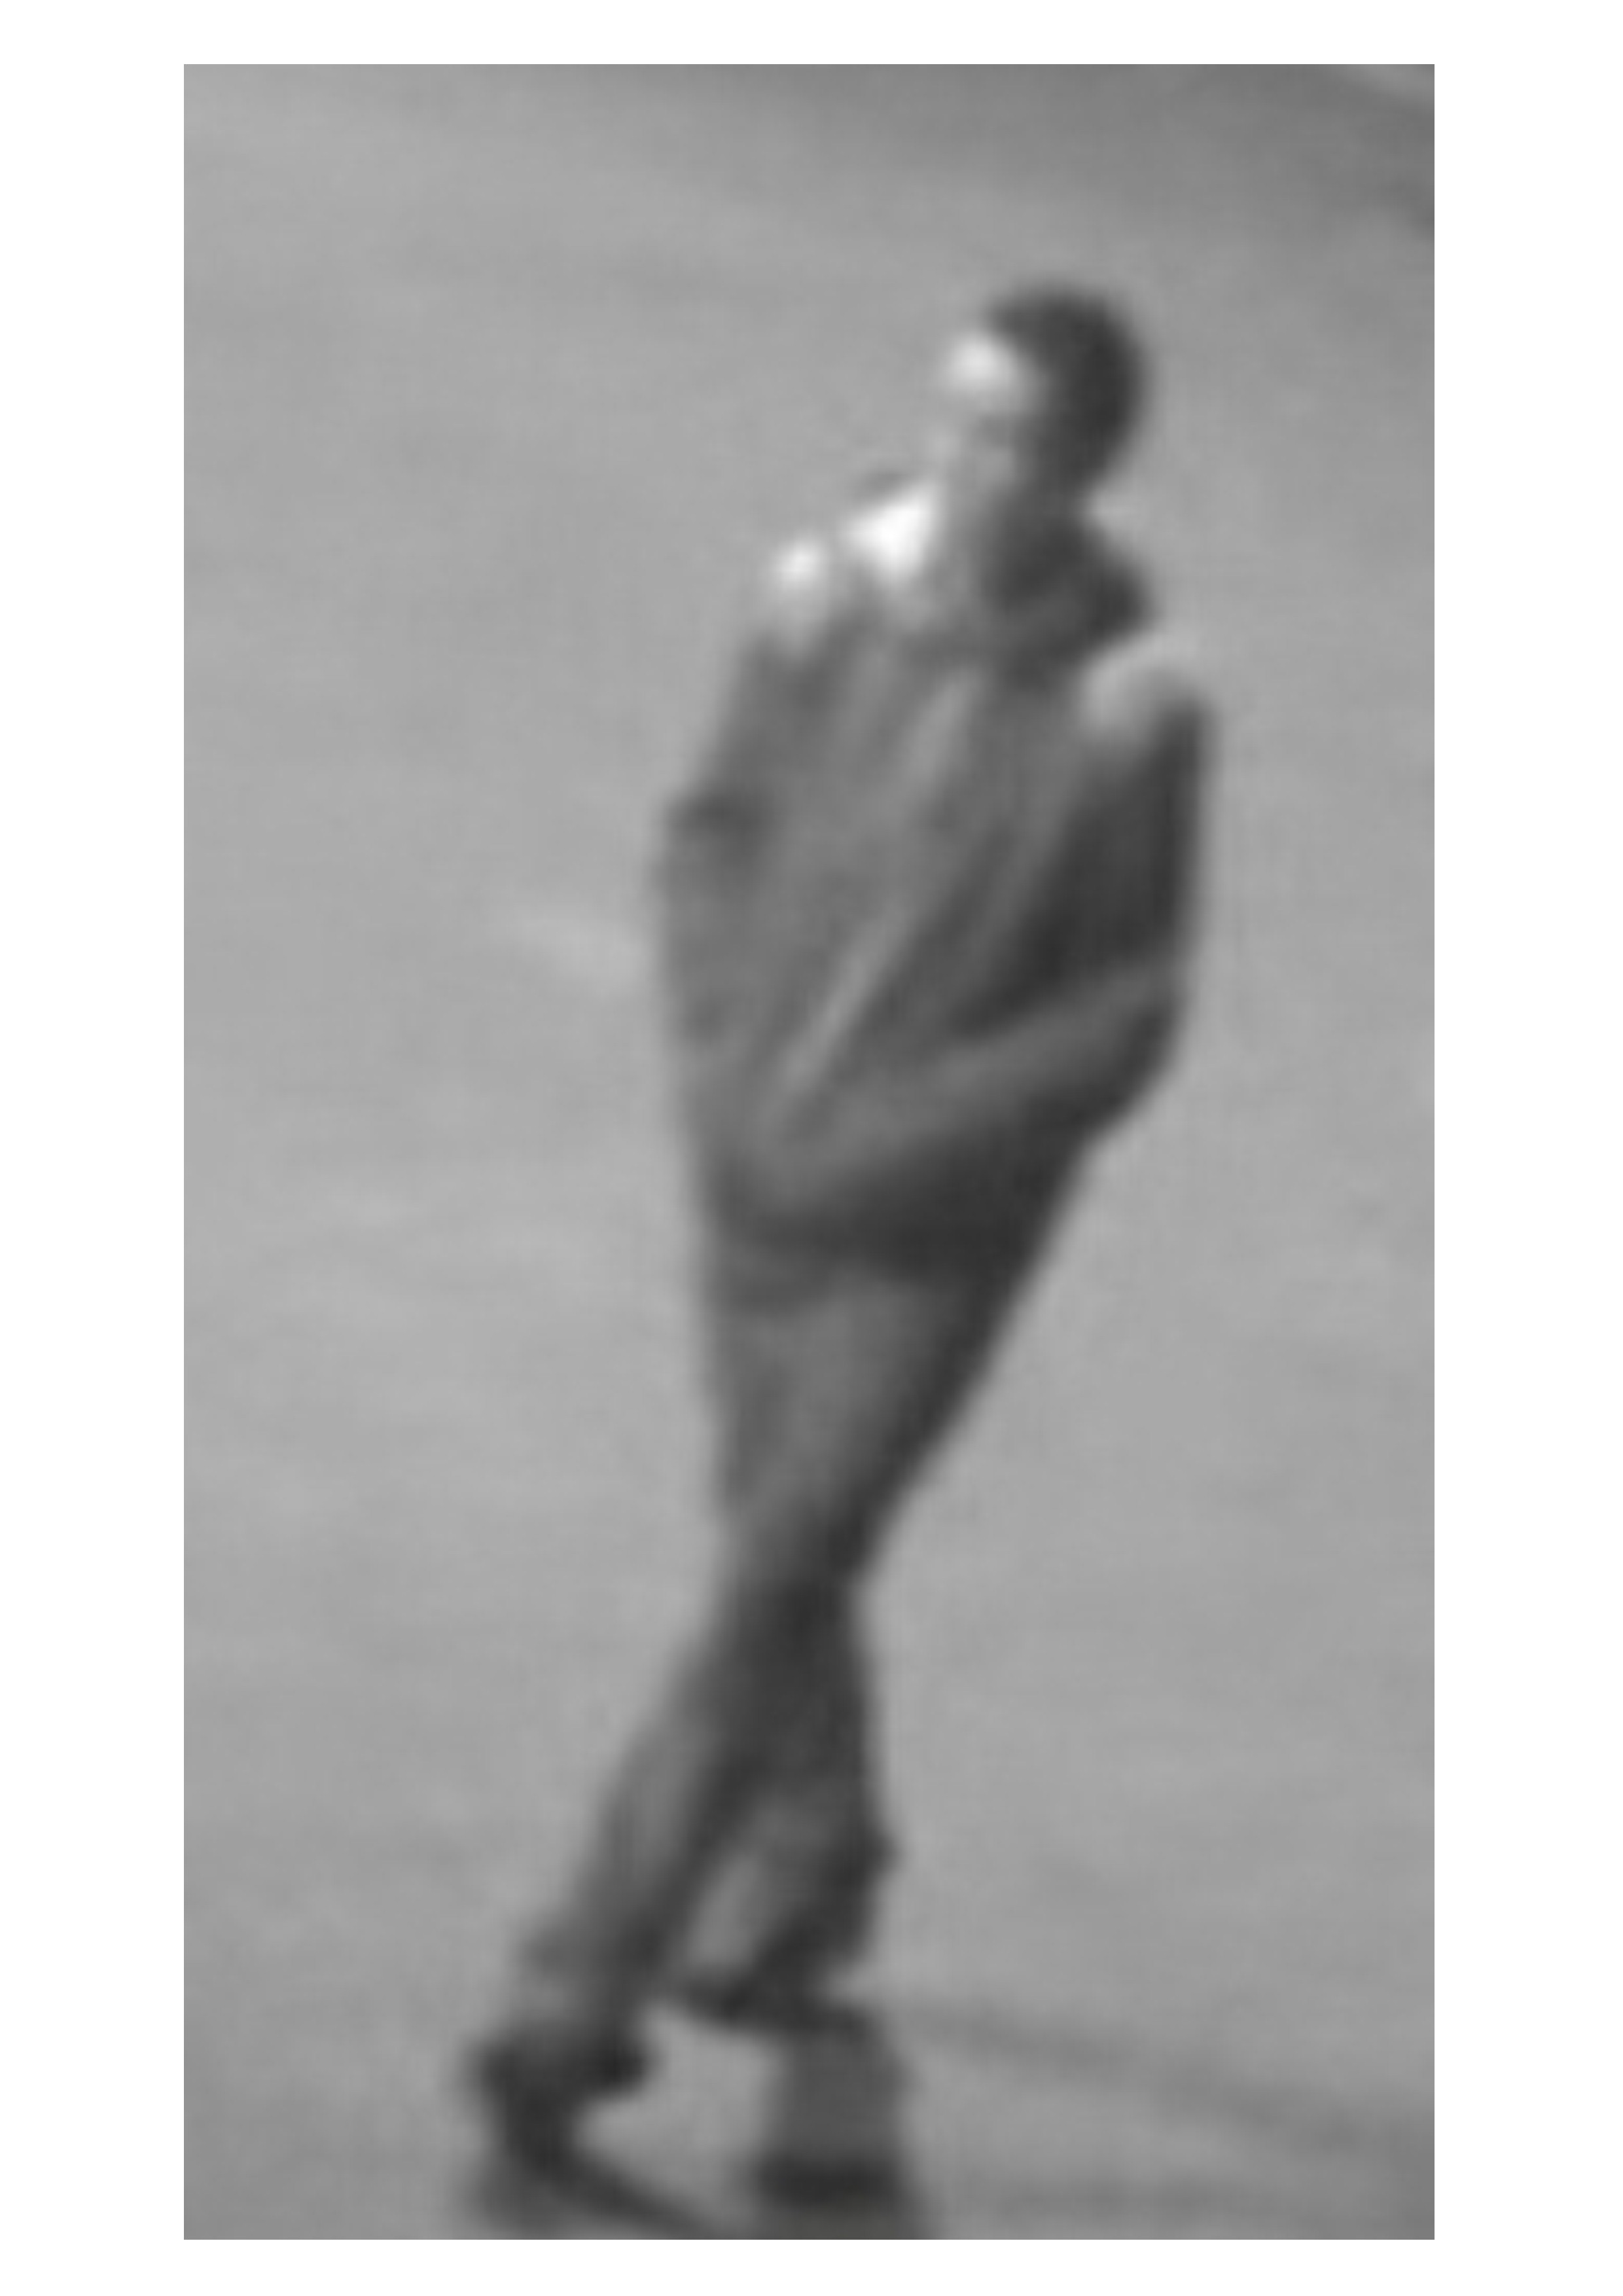 Crime Reference 2106895 7107a